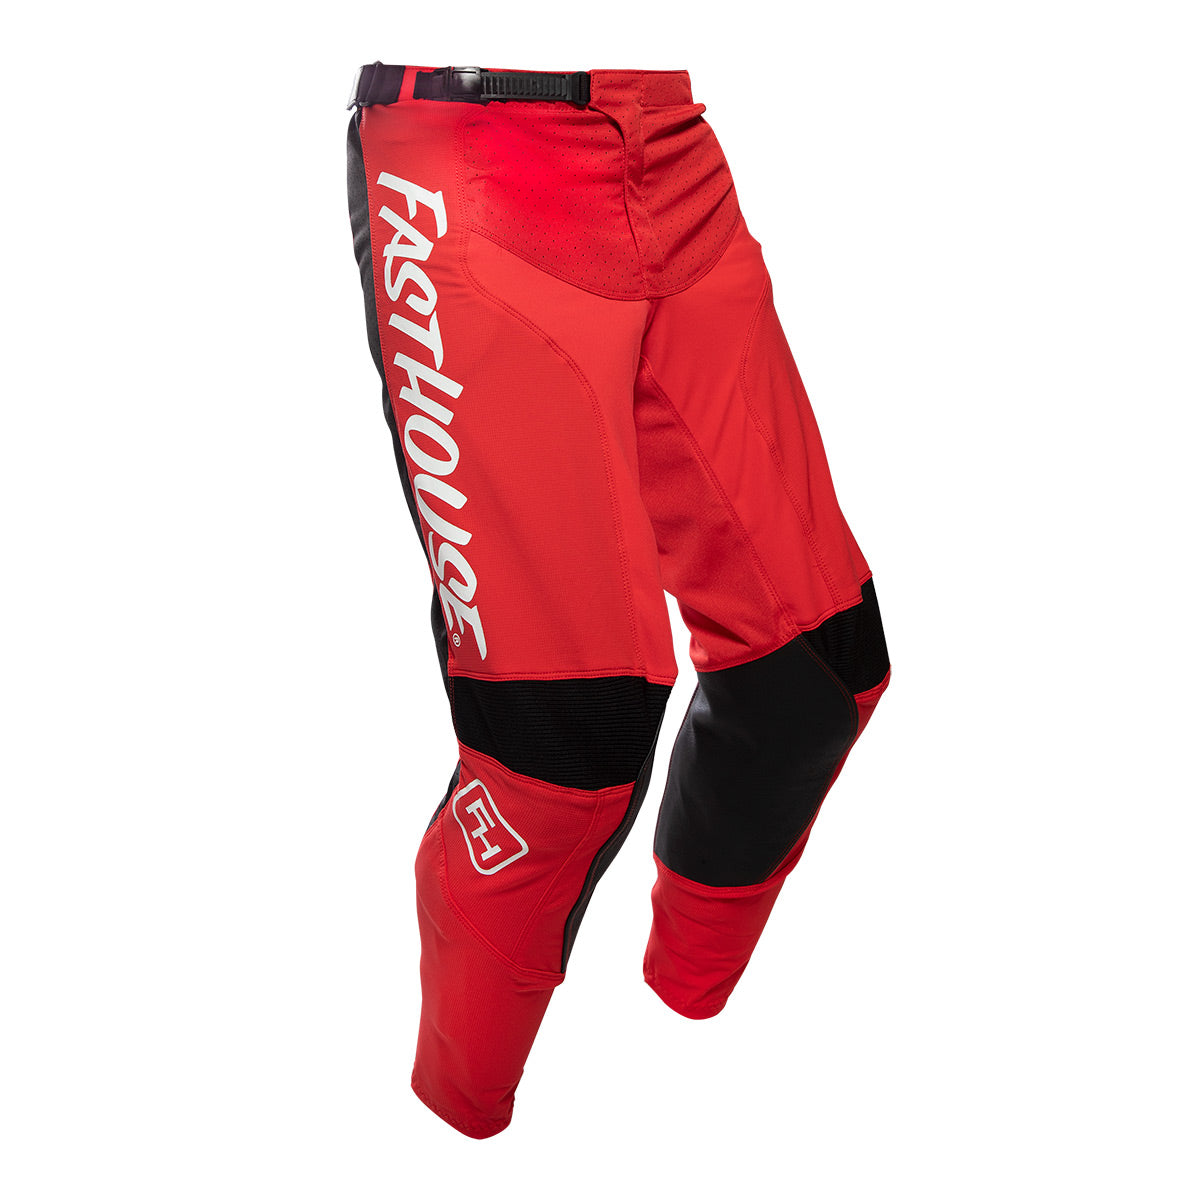 Speed Style Raven Pant - Red/Black